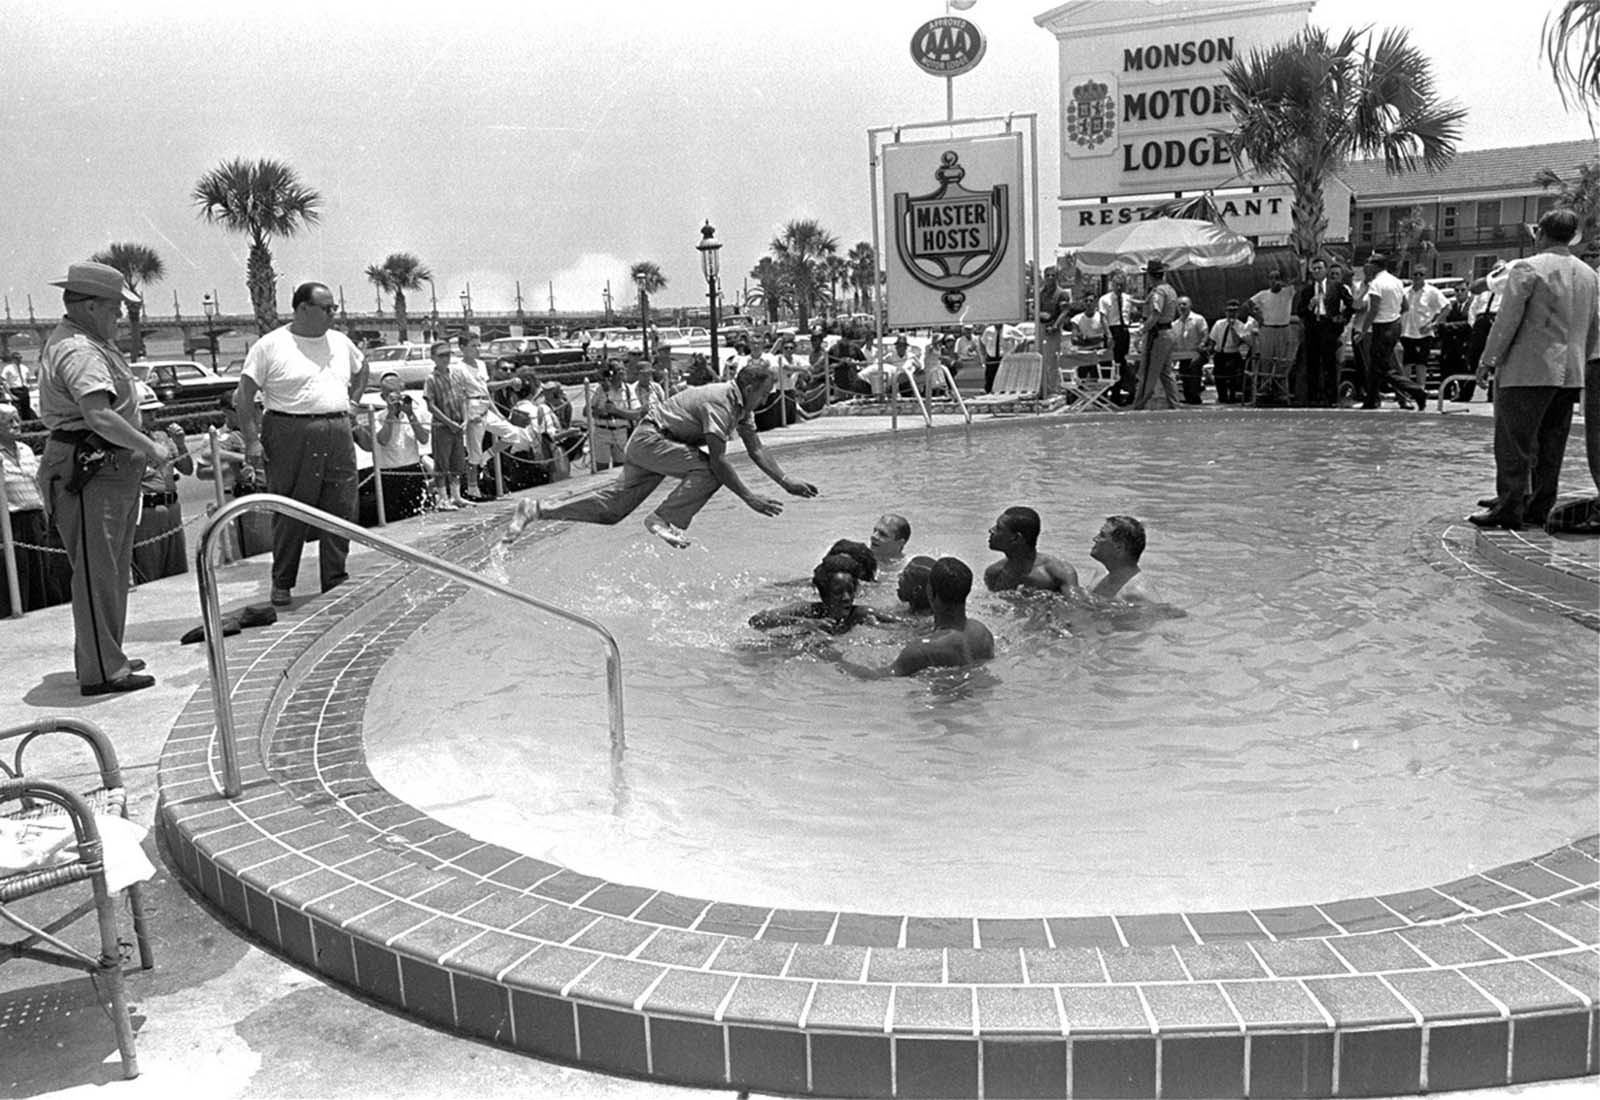 When a group of white and black integrationists refused to leave a motel swimming pool in St. Augustine, Florida, this man dove in and cleared them out on June 18, 1964. All were arrested.